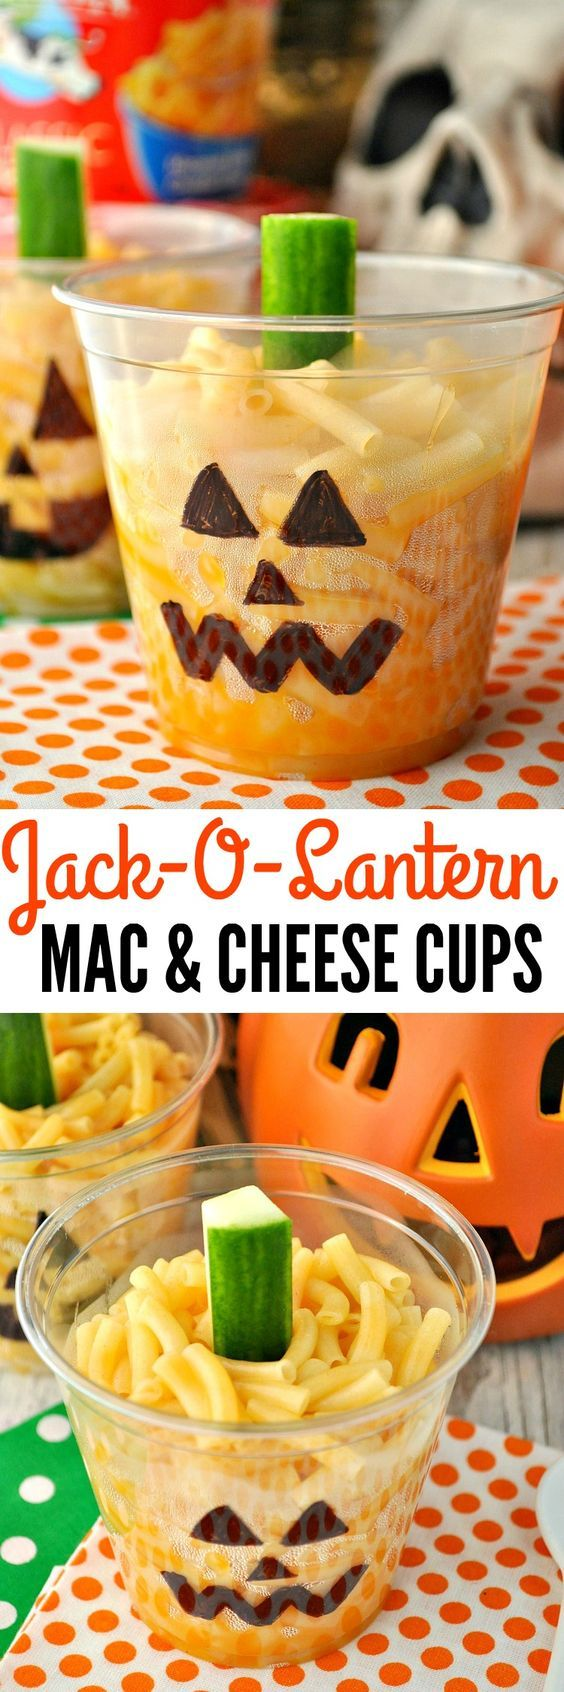 Dinner Ideas For Halloween Party Part - 43: 10 Phenomenal Ideas For Making Your Holiday Parties Memorable